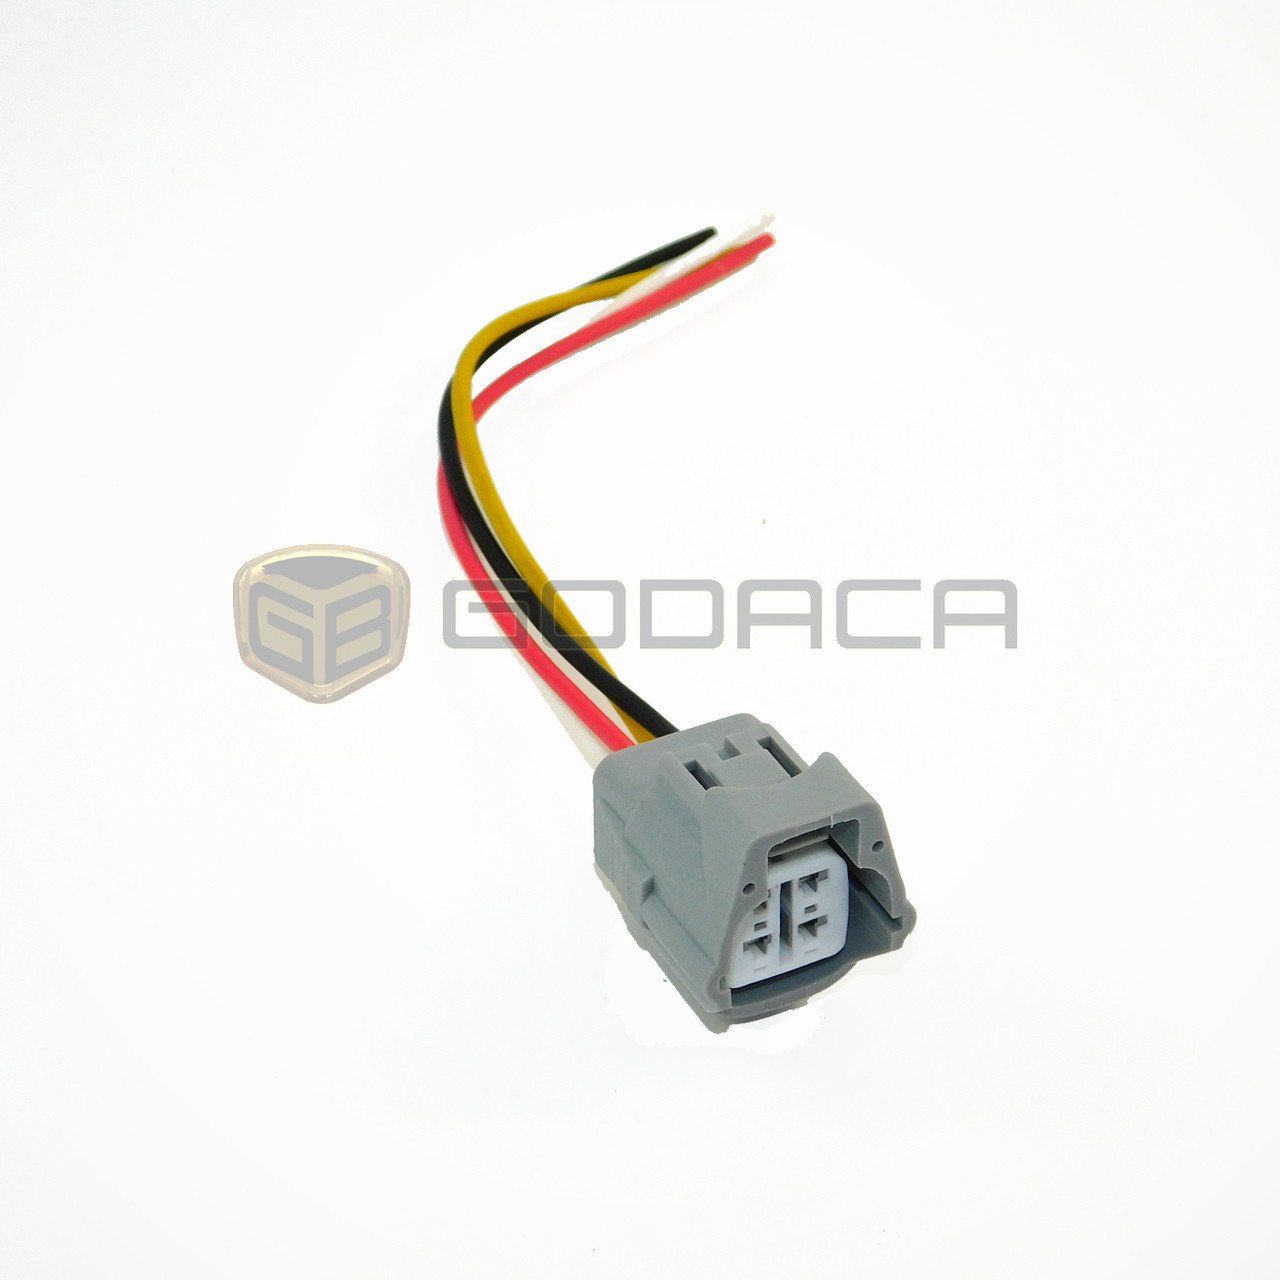 hight resolution of 1 x connector 4 way toyota 2jz a c 4p connector pigtail wiring harness sensor godaca llc